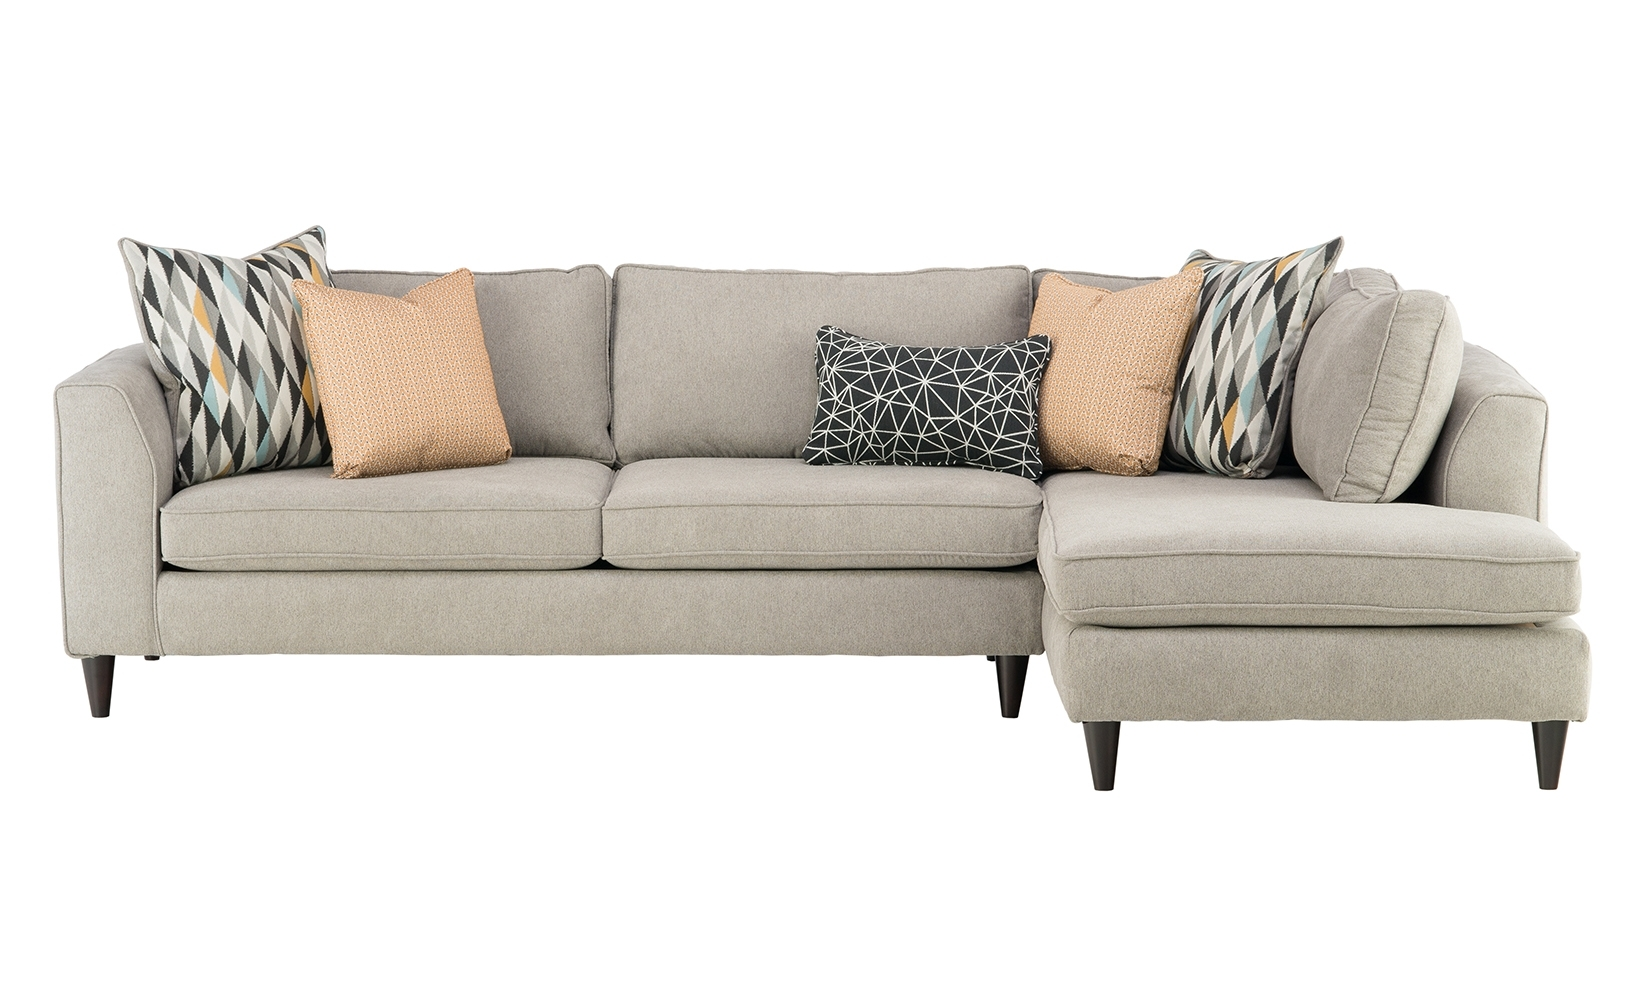 2018 Latest Minneapolis Sectional Sofas